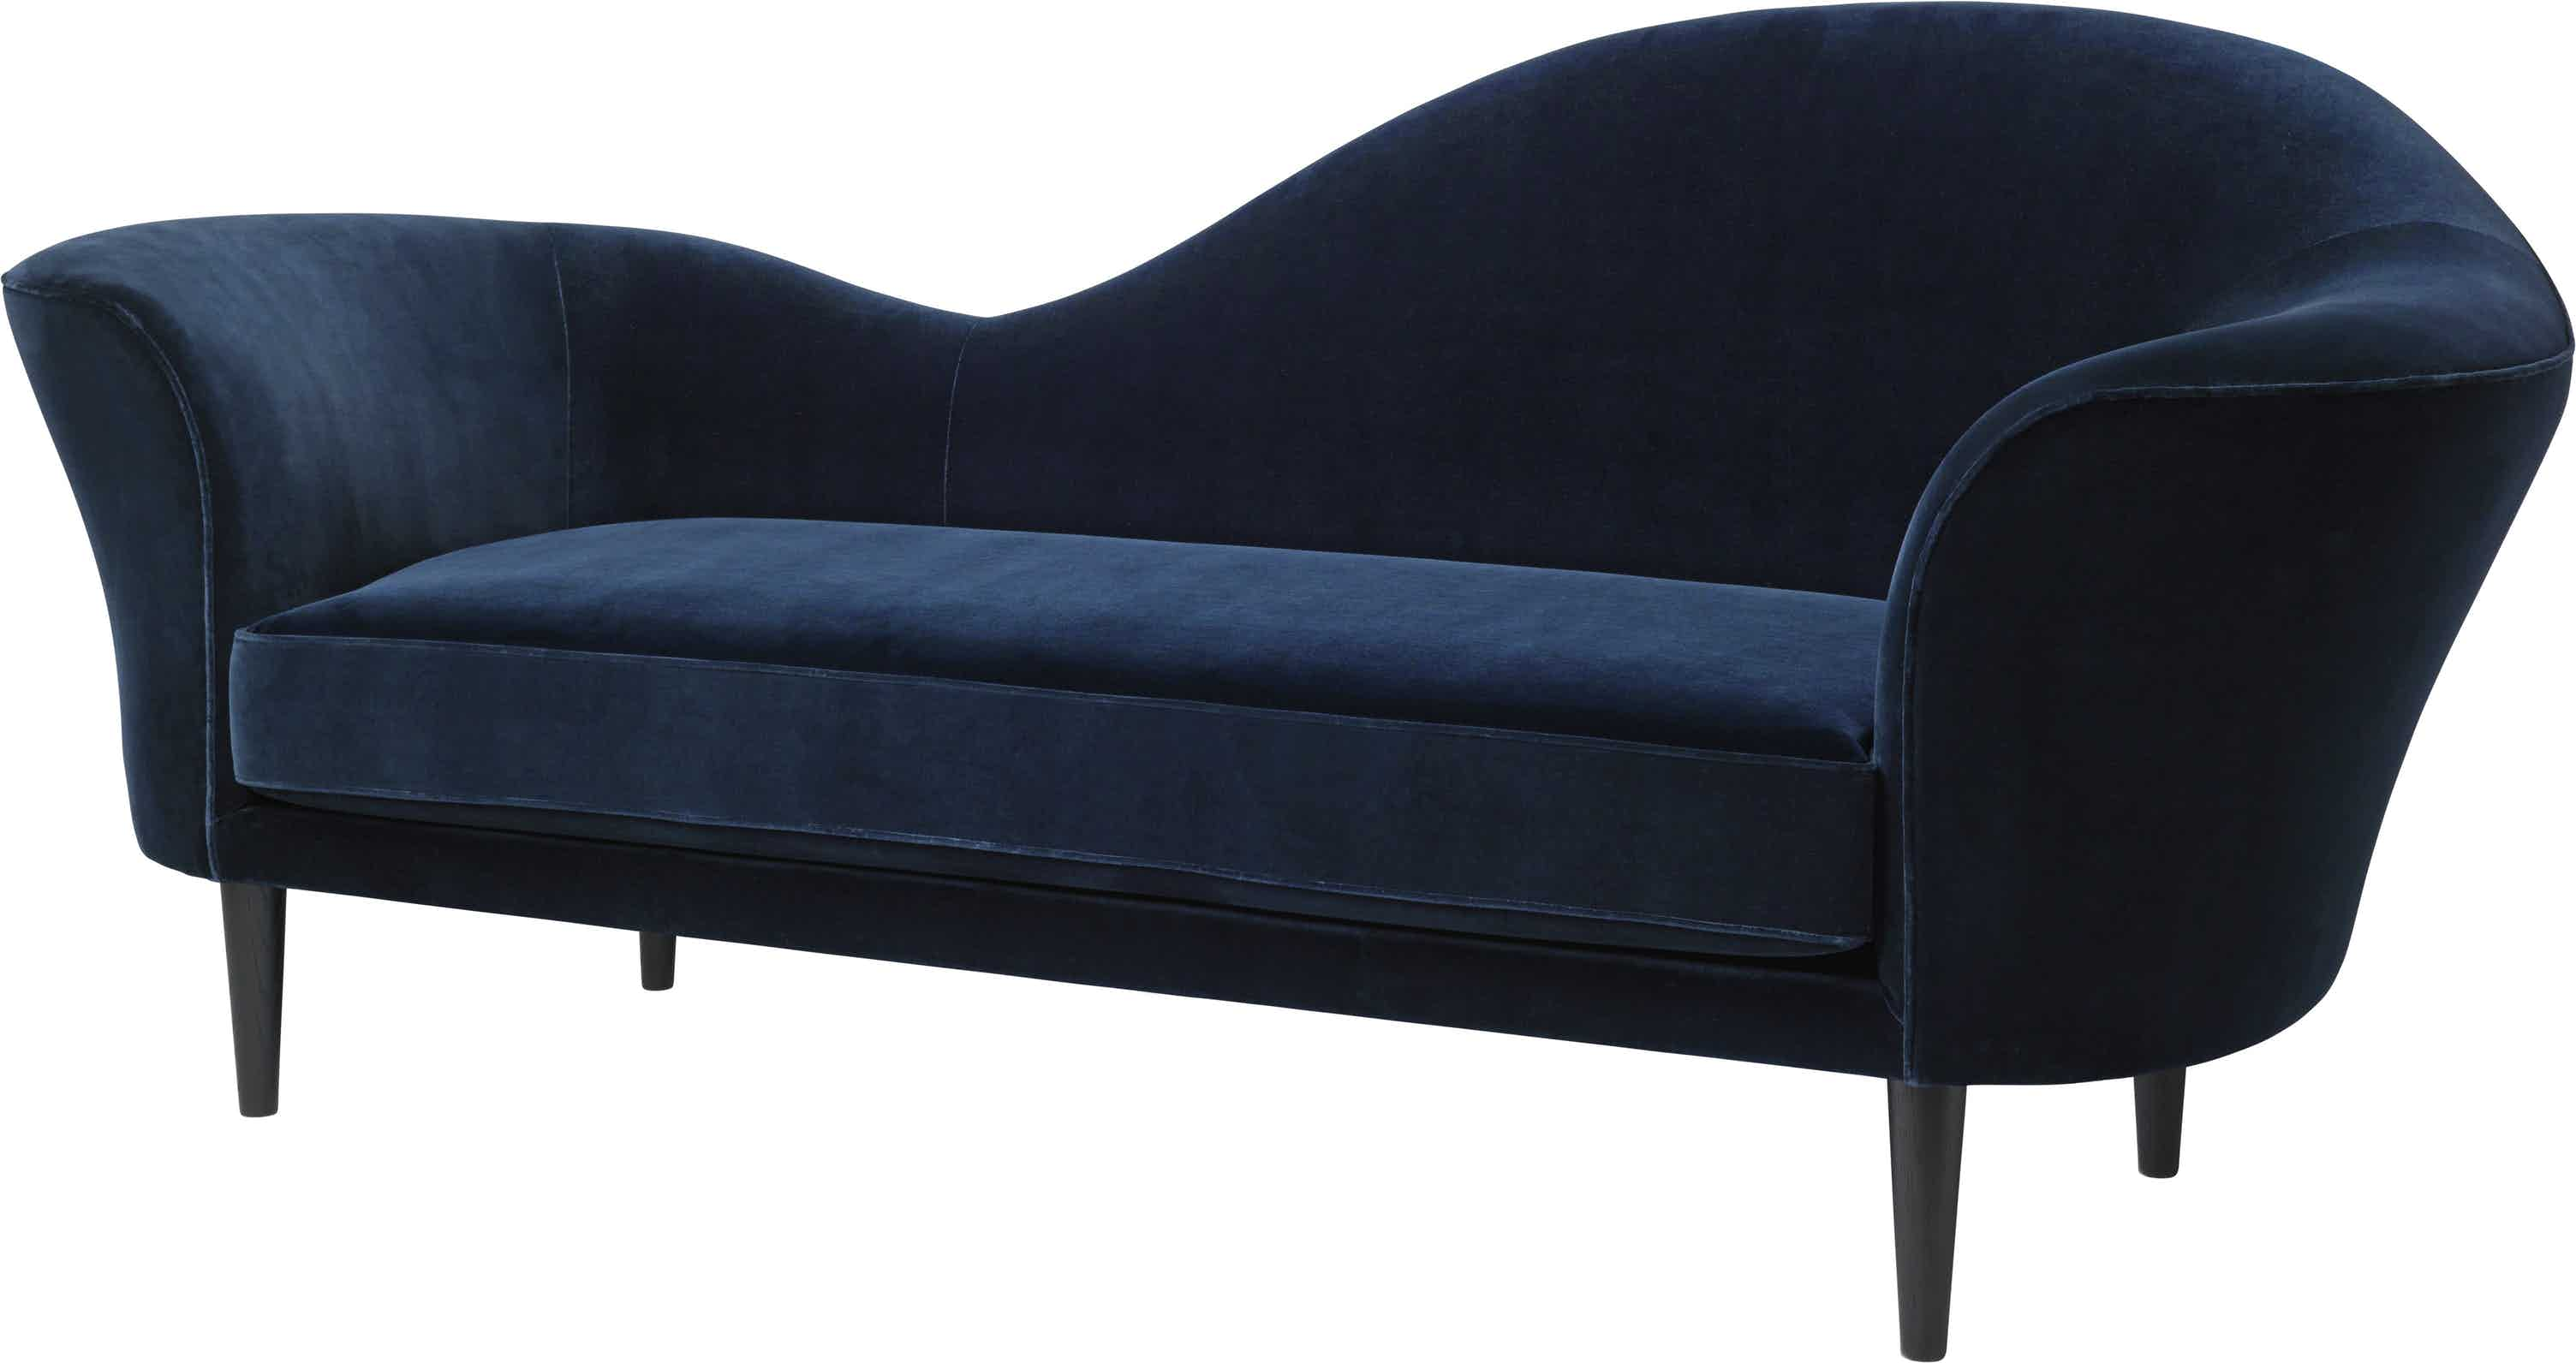 Gubi Grand Piano Sofa Blue Angle Haute Living